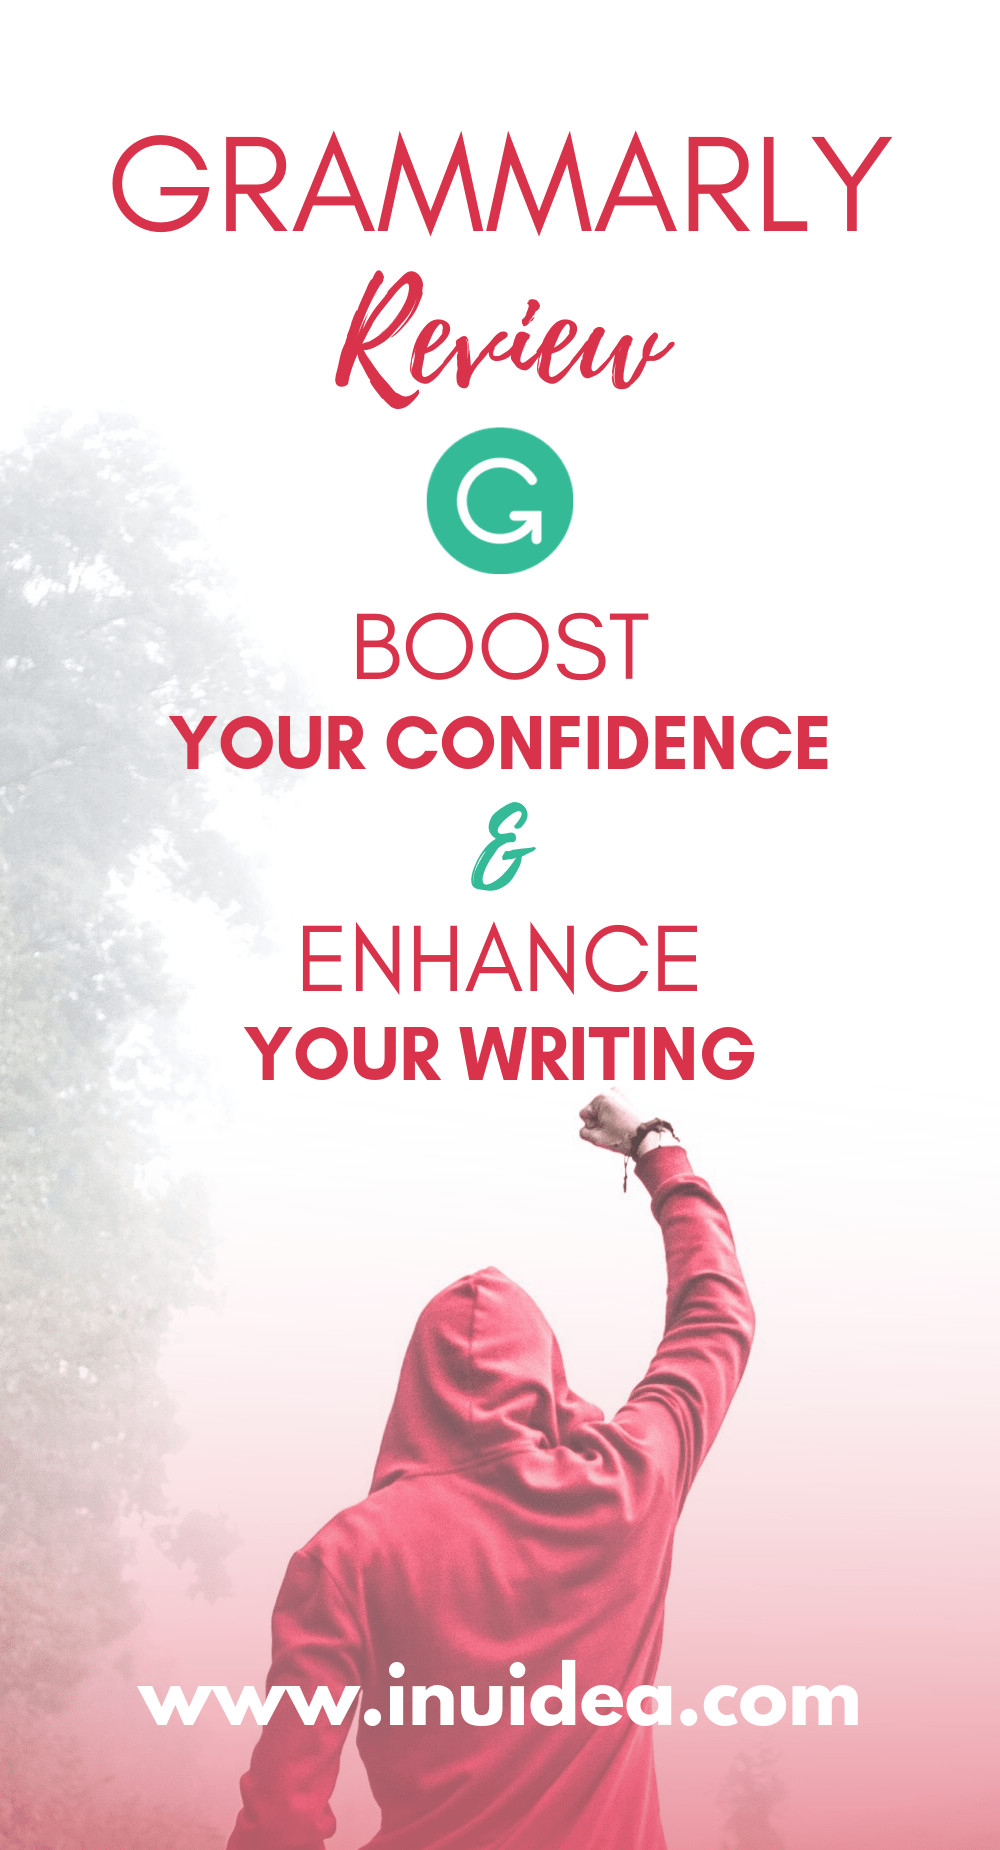 Buy Grammarly Coupons Codes